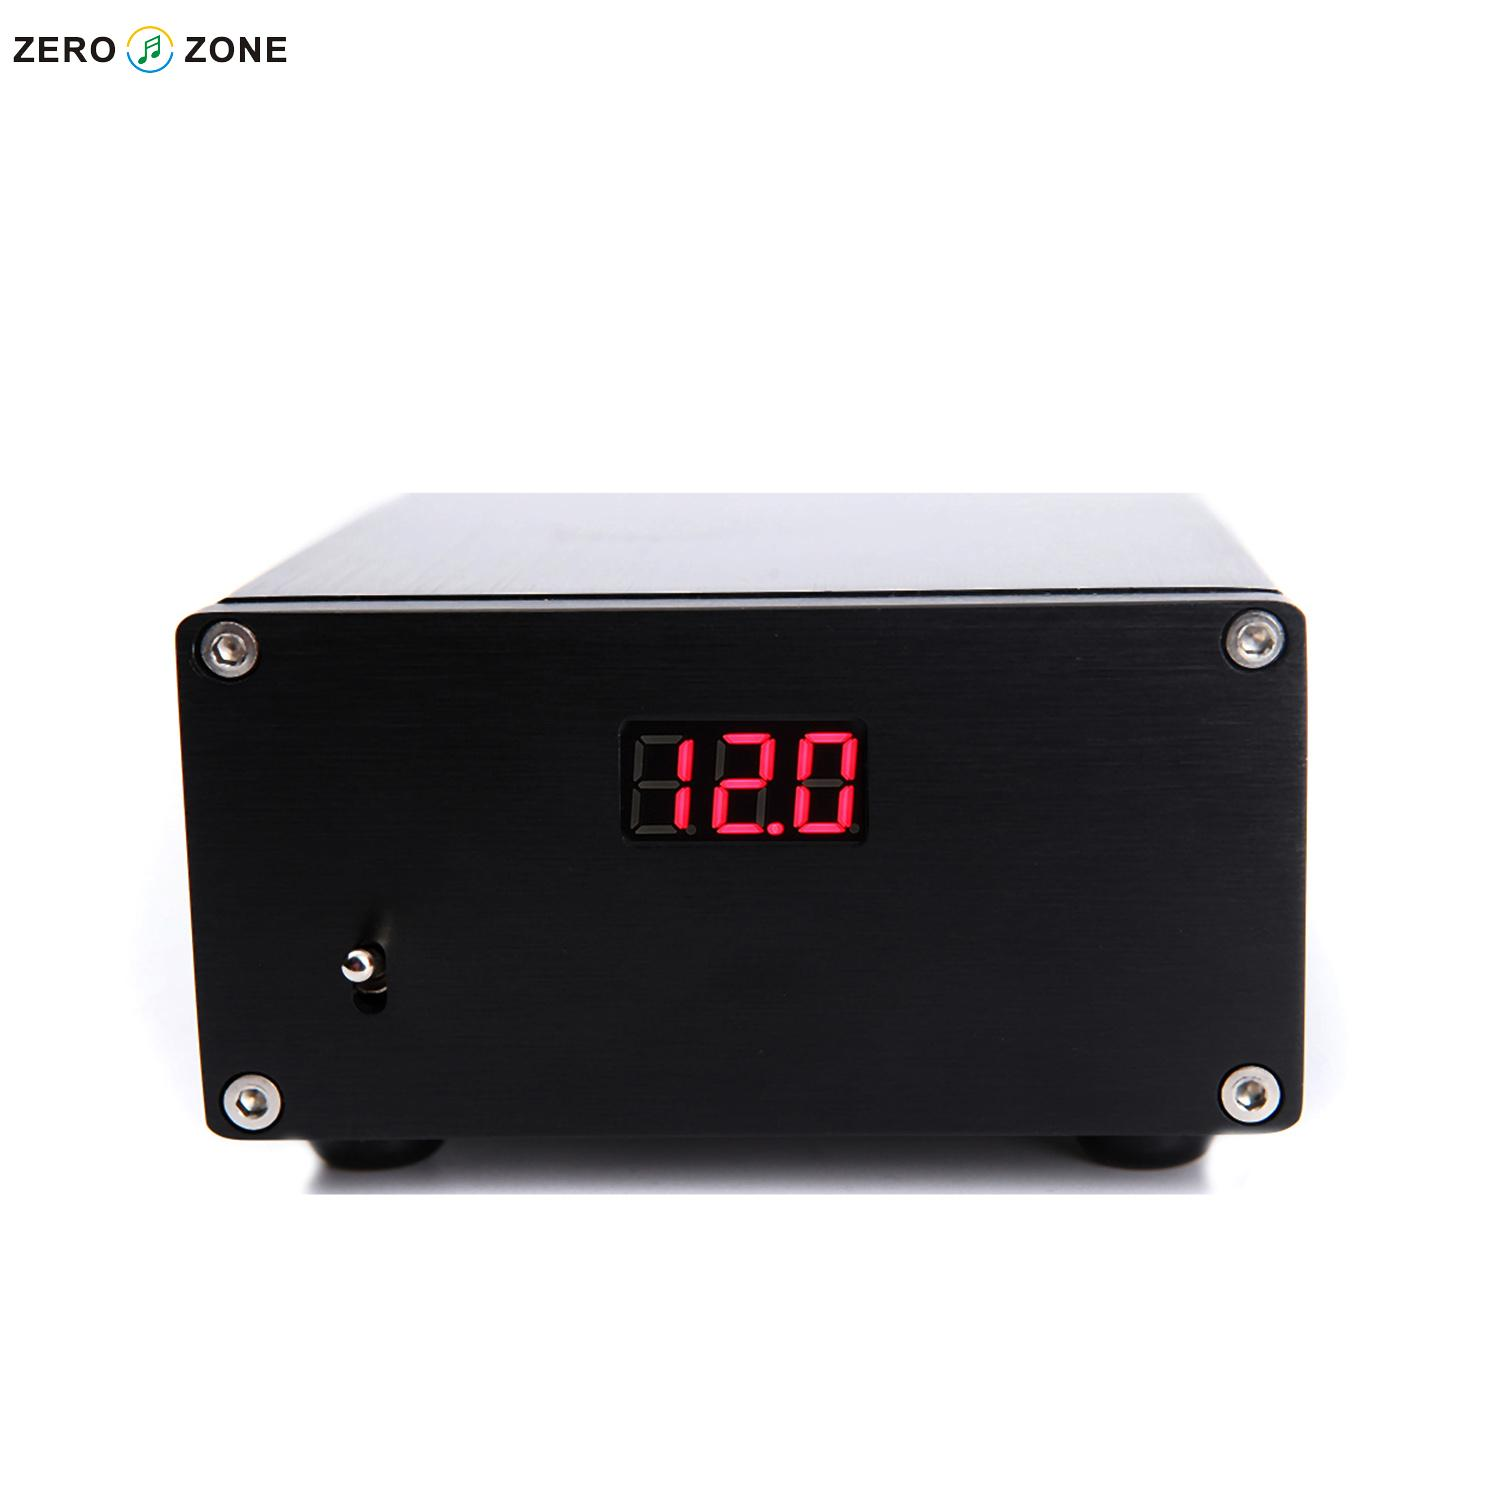 50w DC5V 9V 12V 15V 18V 19V 24V Hifi Linear Power Amp, Usb, Dac, AMPLIFIER,External Power Supply With Digital Display